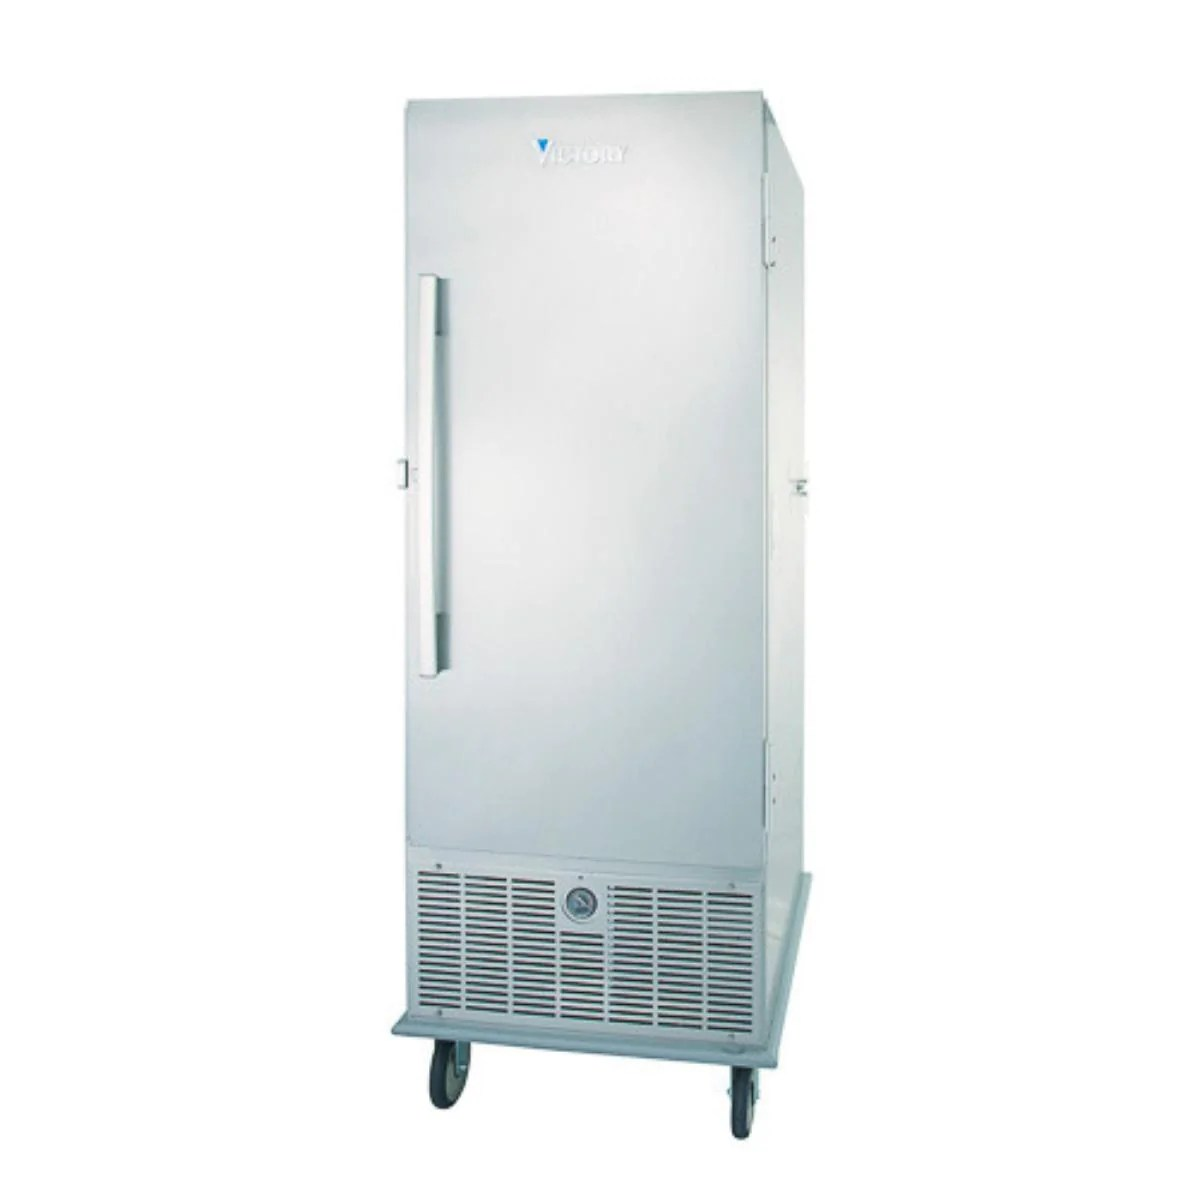 victory acrs 1d s1 sts ultraspec series air curtain refrigerator